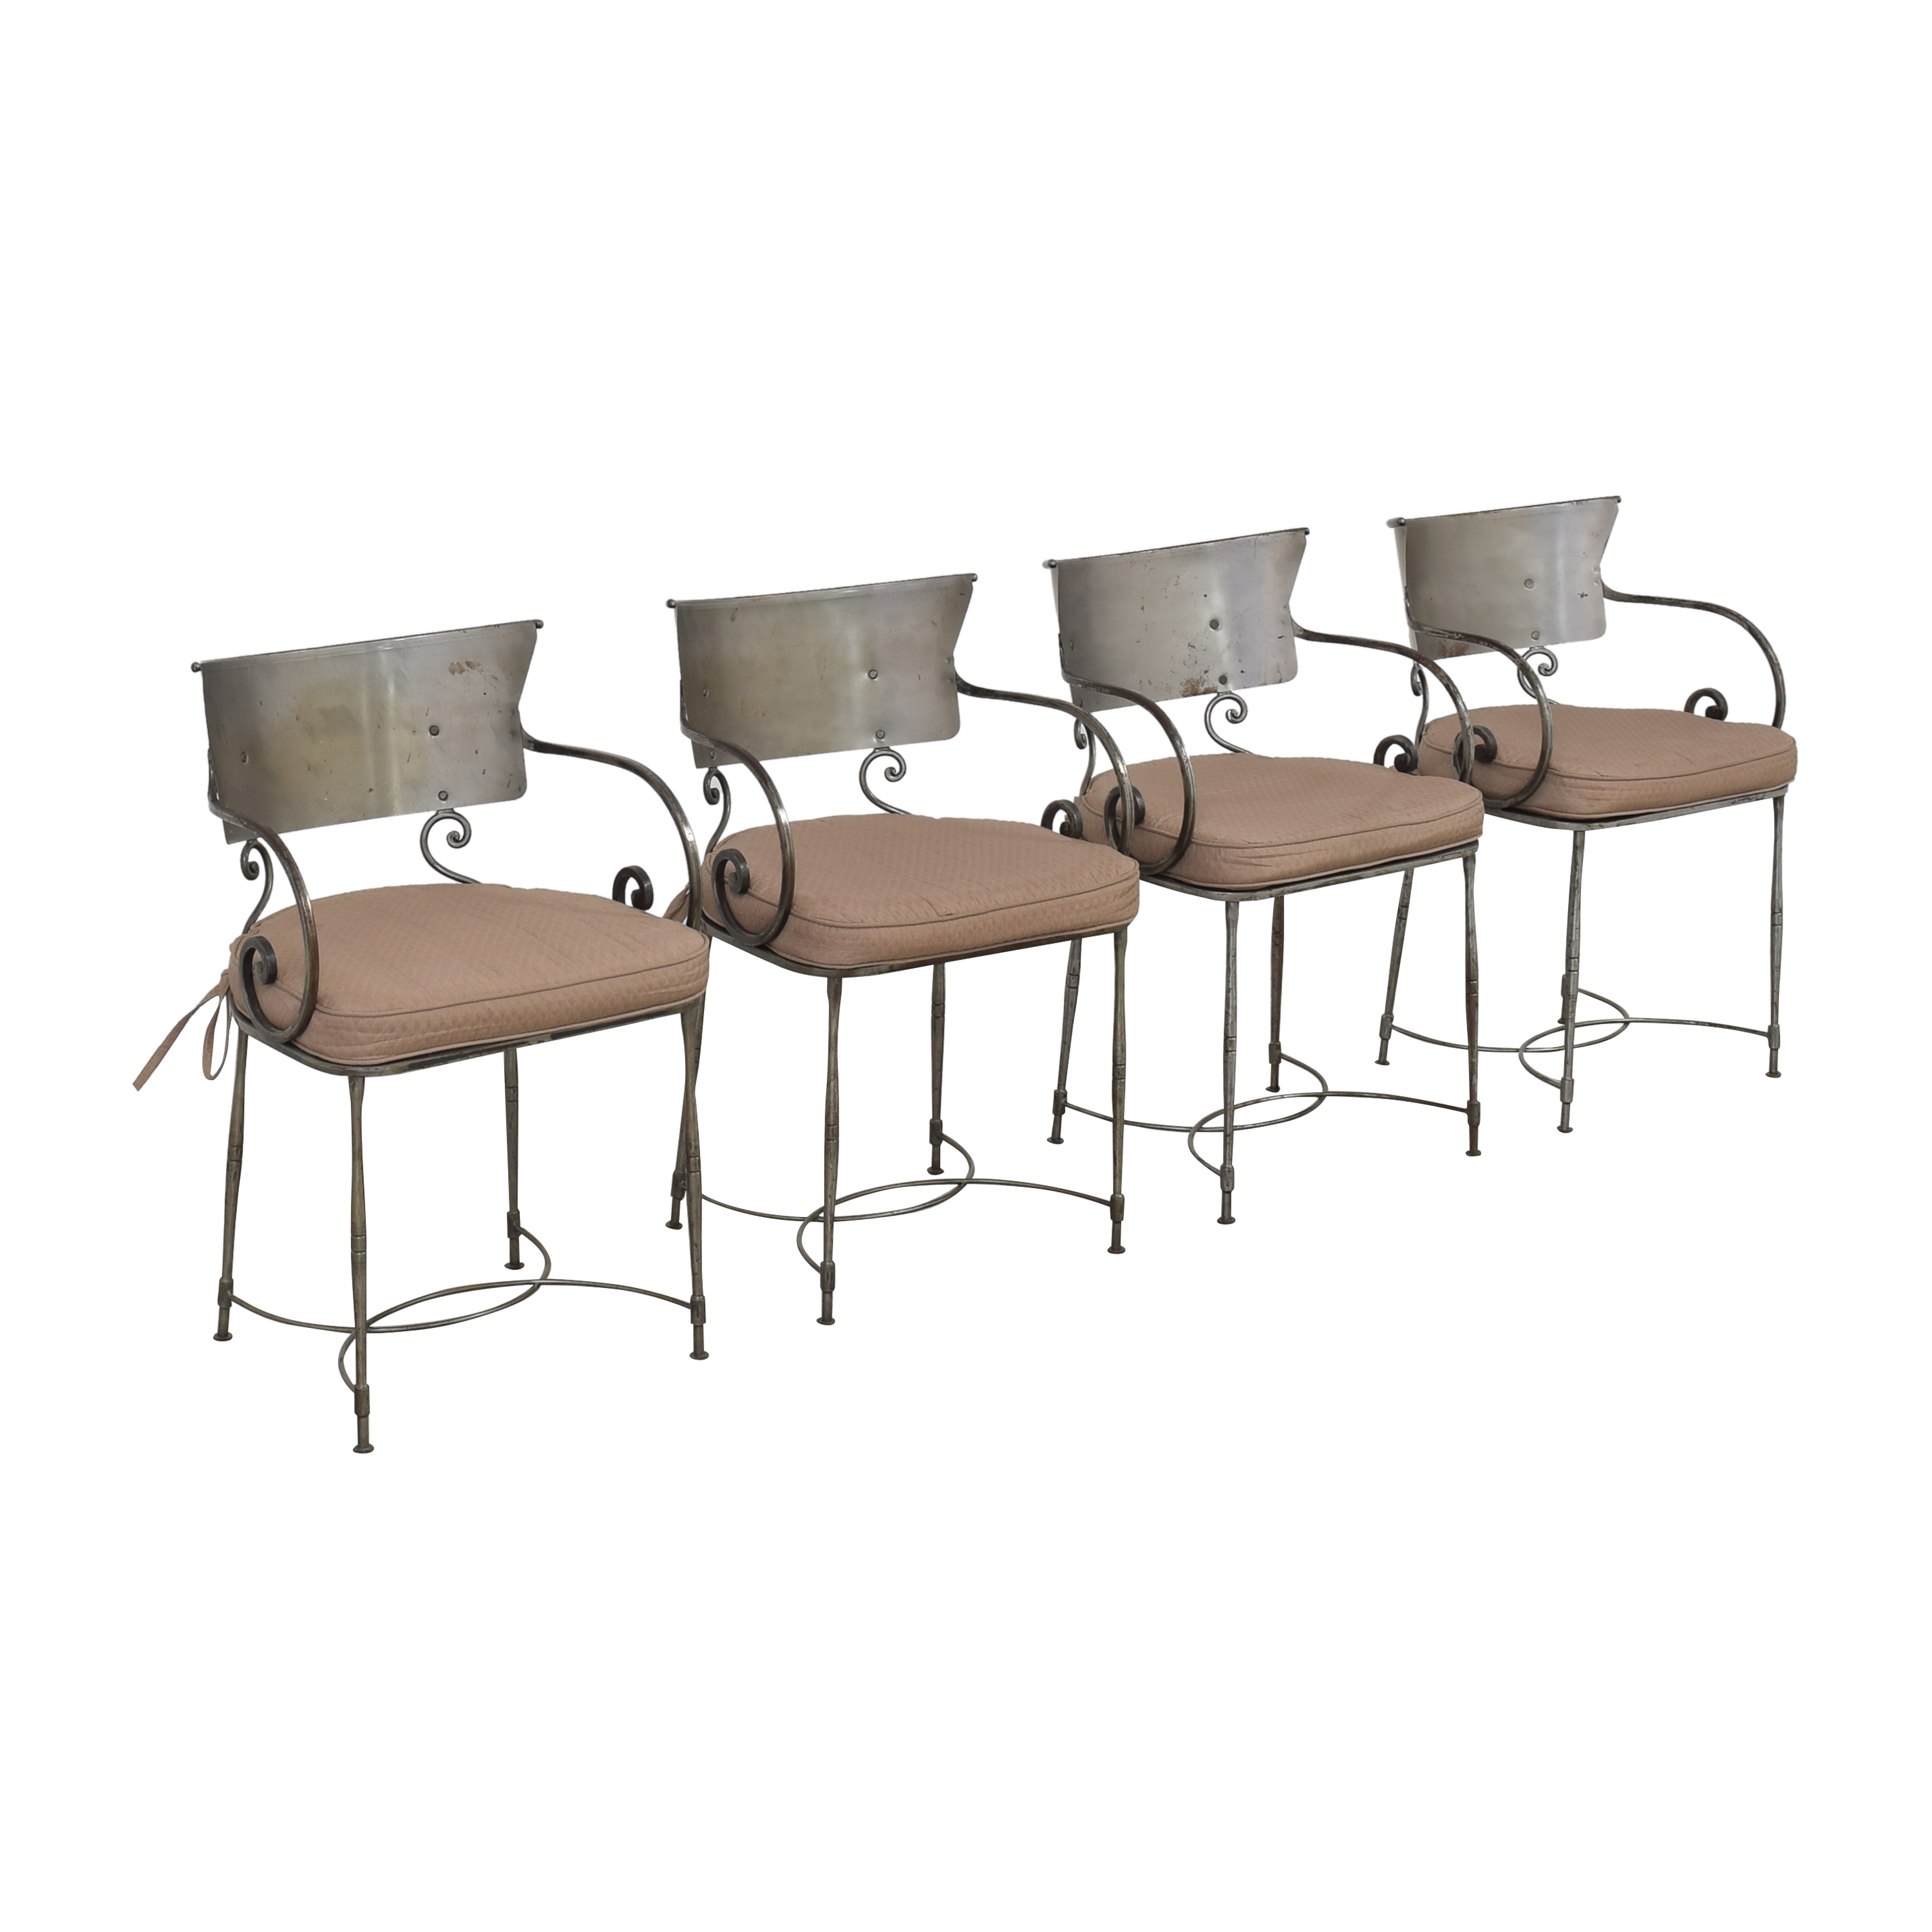 Bloomingdale's Art Deco Style Chairs / Chairs